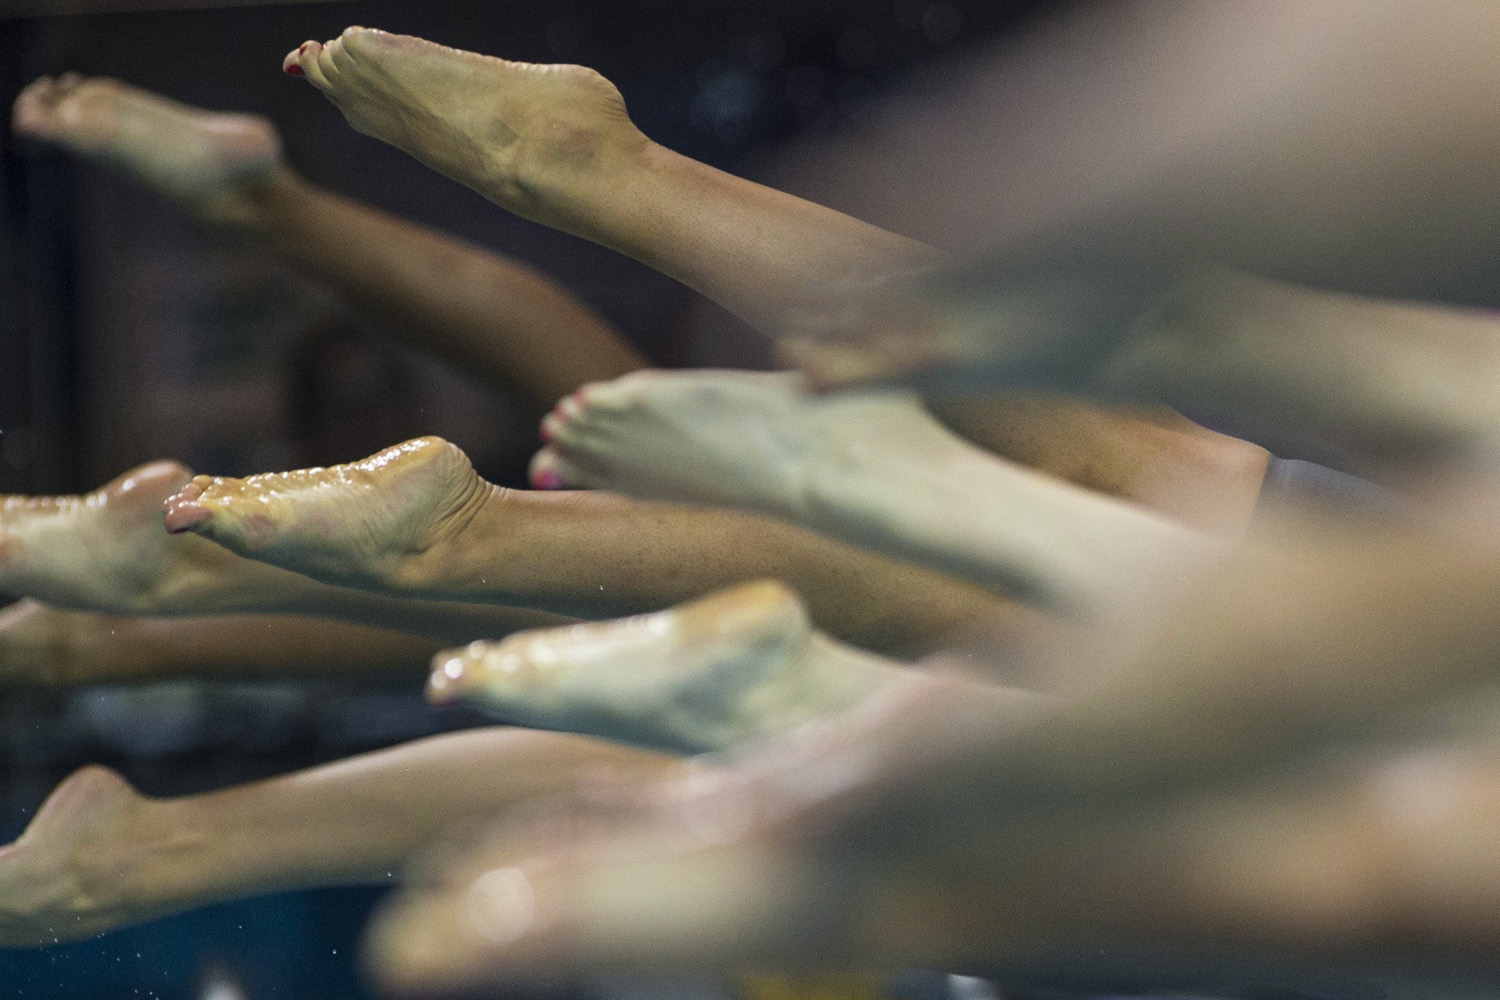 Aug. 20, 2014. Athletes compete in a women's 200m freestyle heat at the 2014 Nanjing Youth Olympic Games in Nanjing, Jiangsu province.